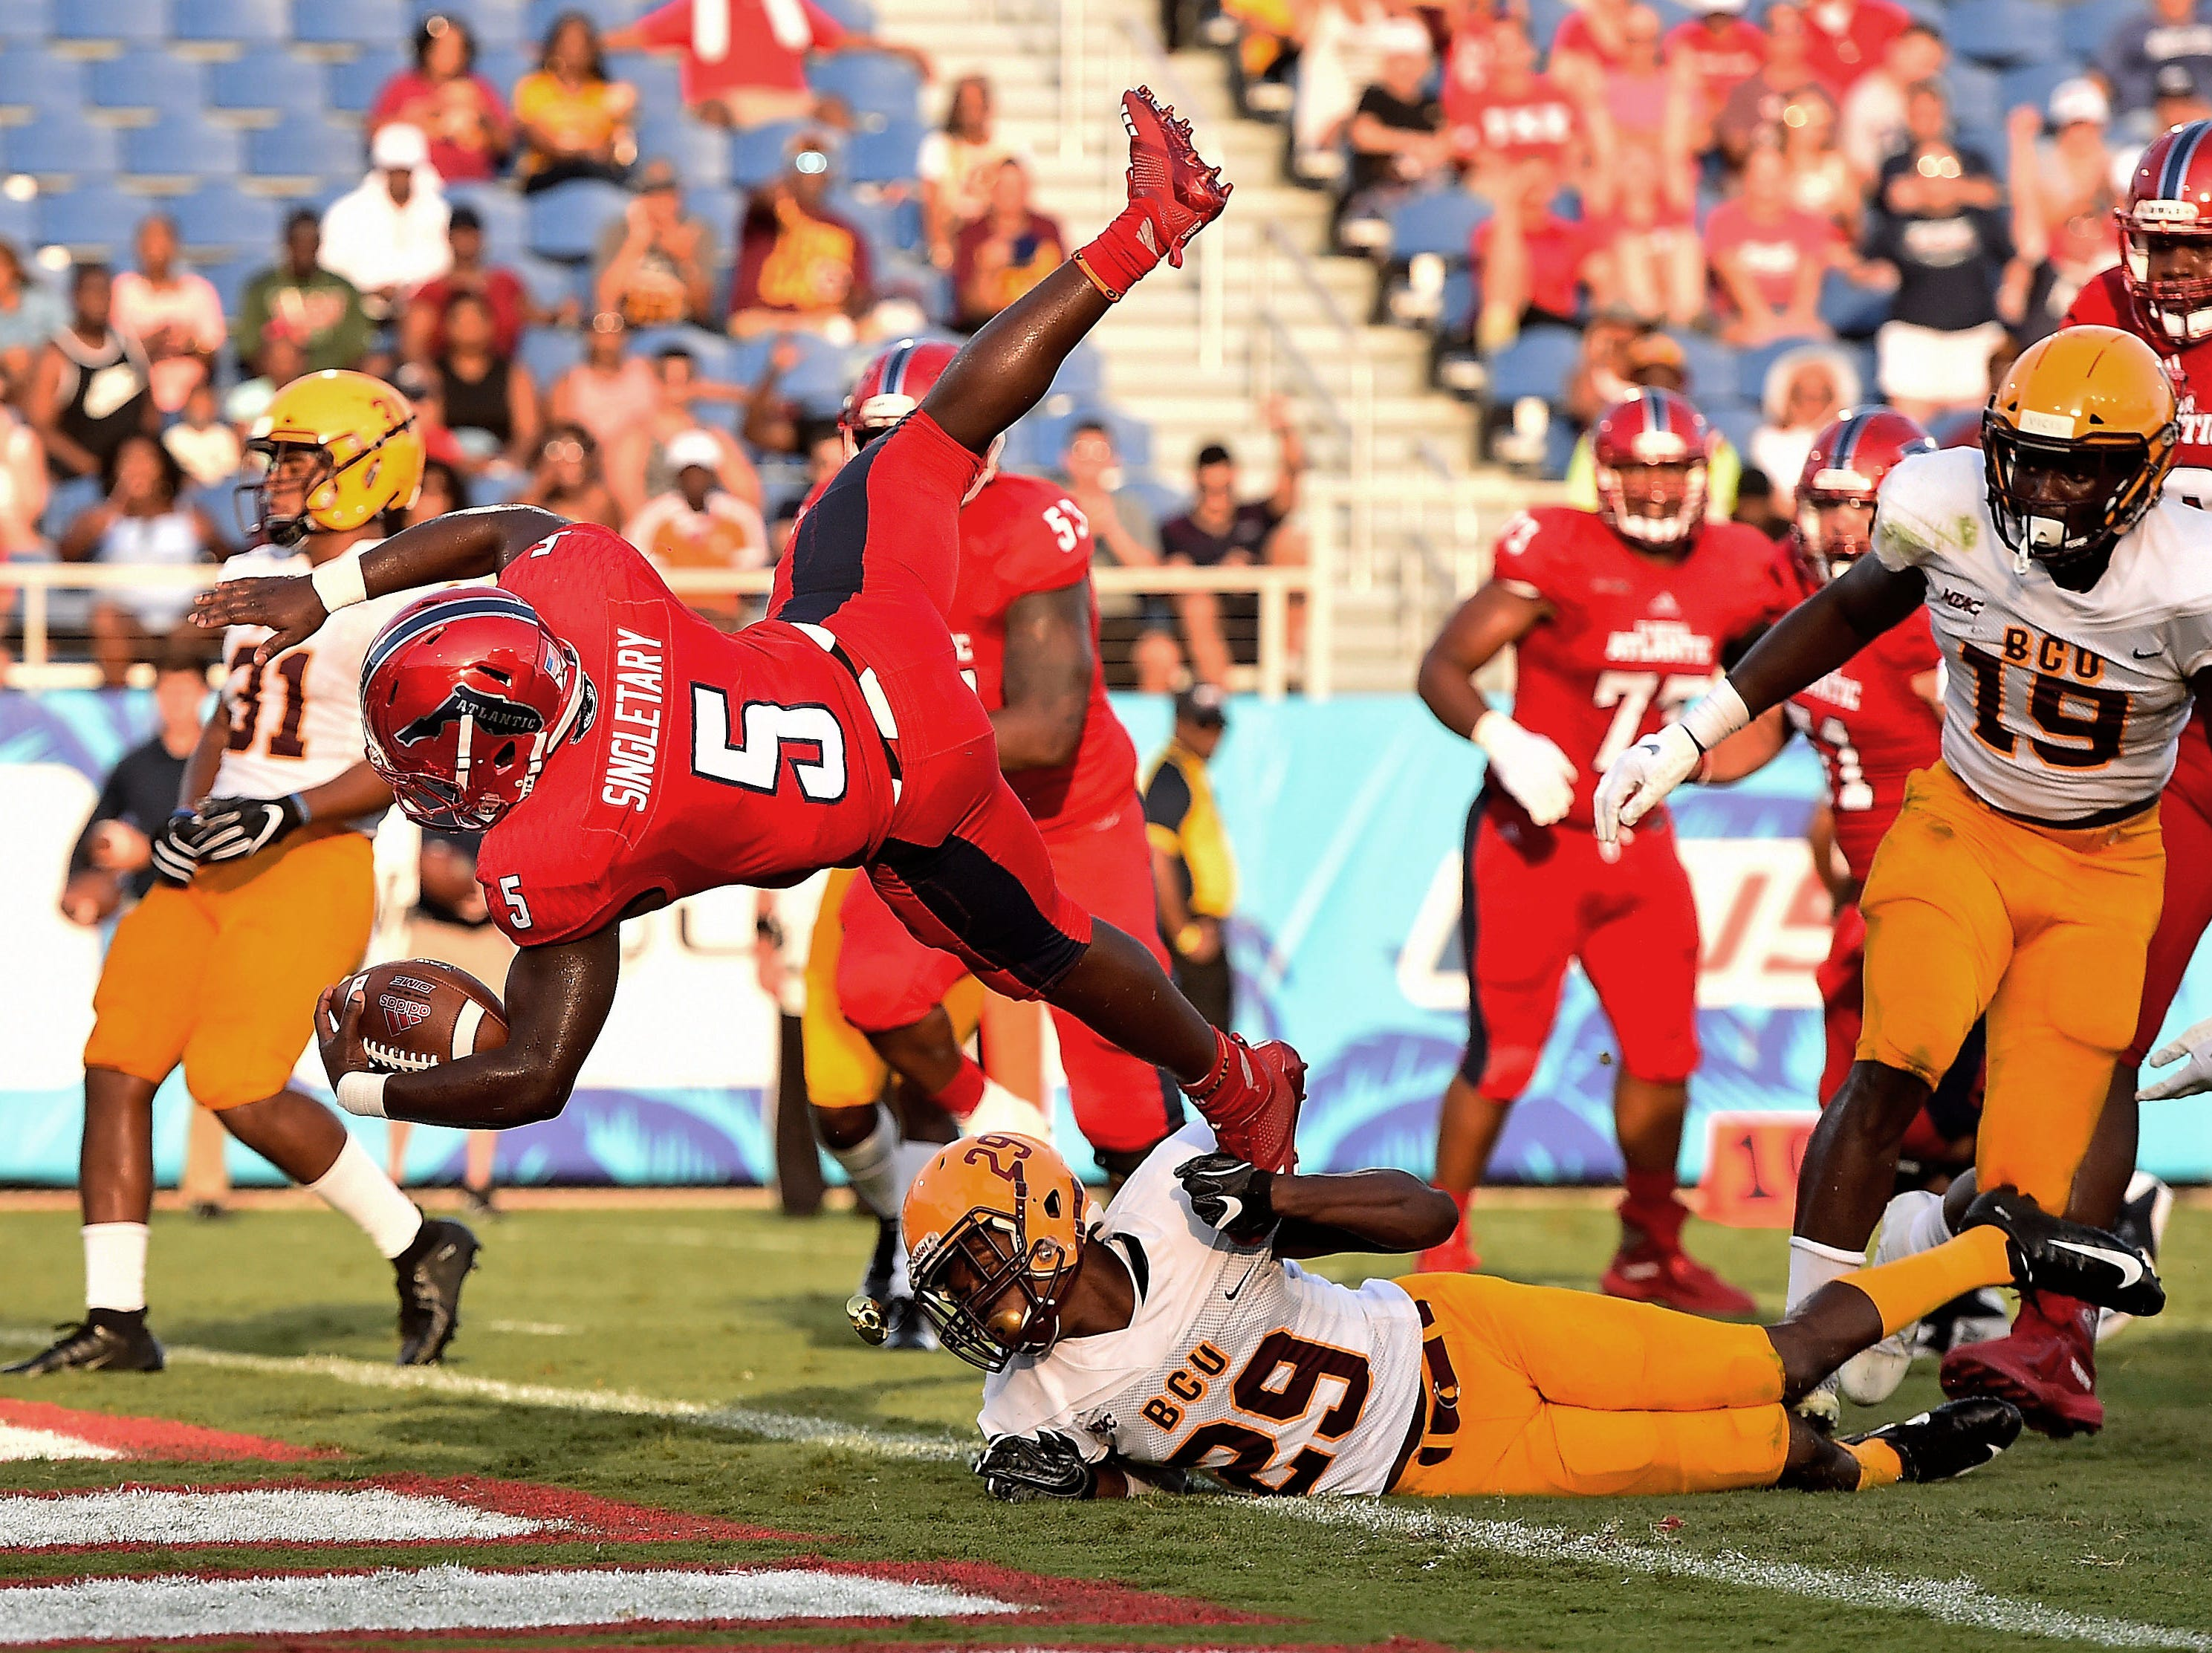 Florida Atlantic Owls running back Devin Singletary (5) leaps over Bethune Cookman Wildcats cornerback Jamauri Laguerre (29) to score a  touchdown during the first half at FAU Football Stadium.